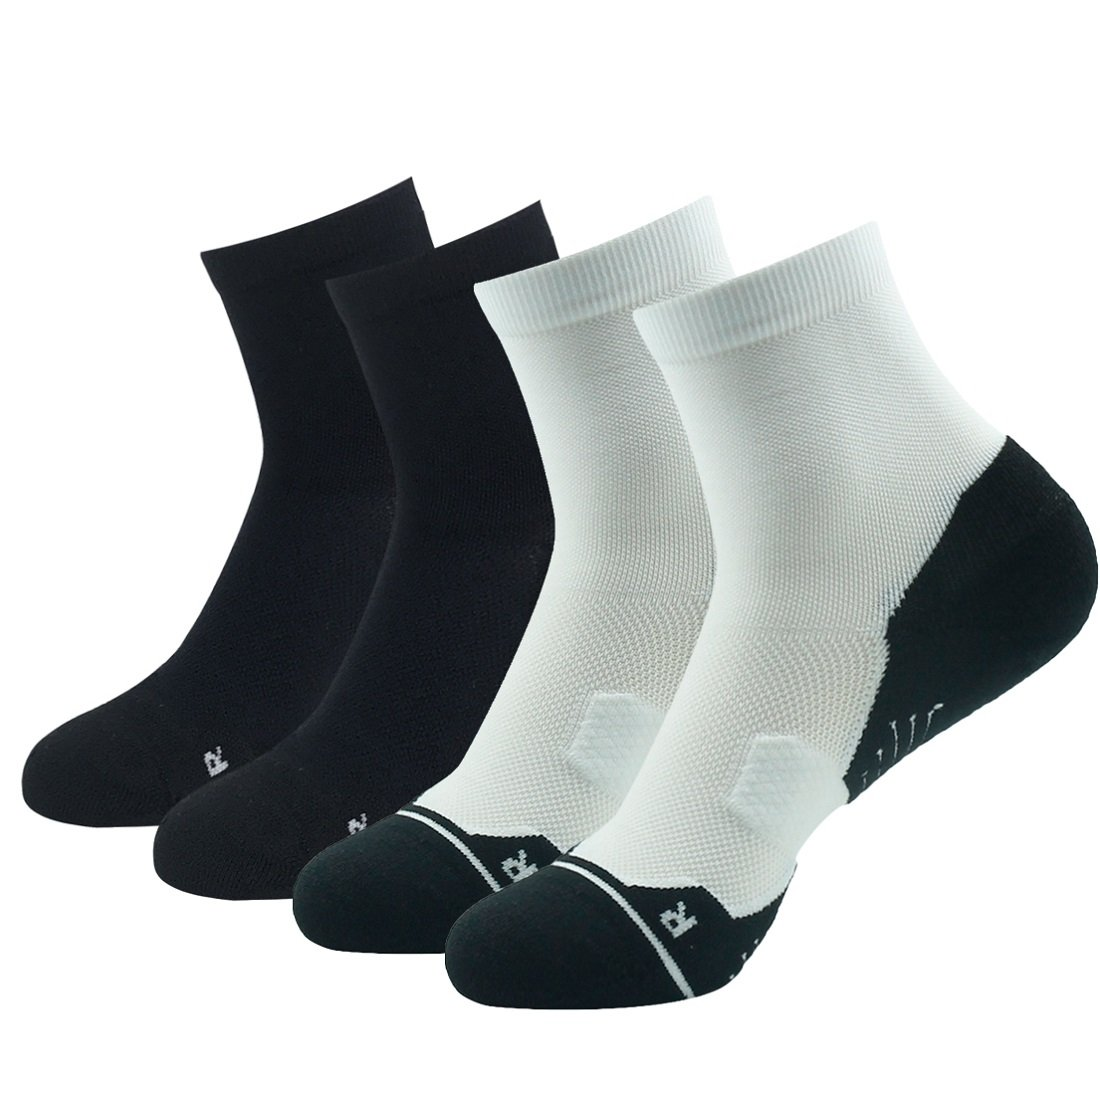 2 Pack Black & 2 Pack White Running Socks Support, HUSO Men Women High Performance Arch Compression Cushioned Quarter Socks 1,2,3,4,6 Pairs